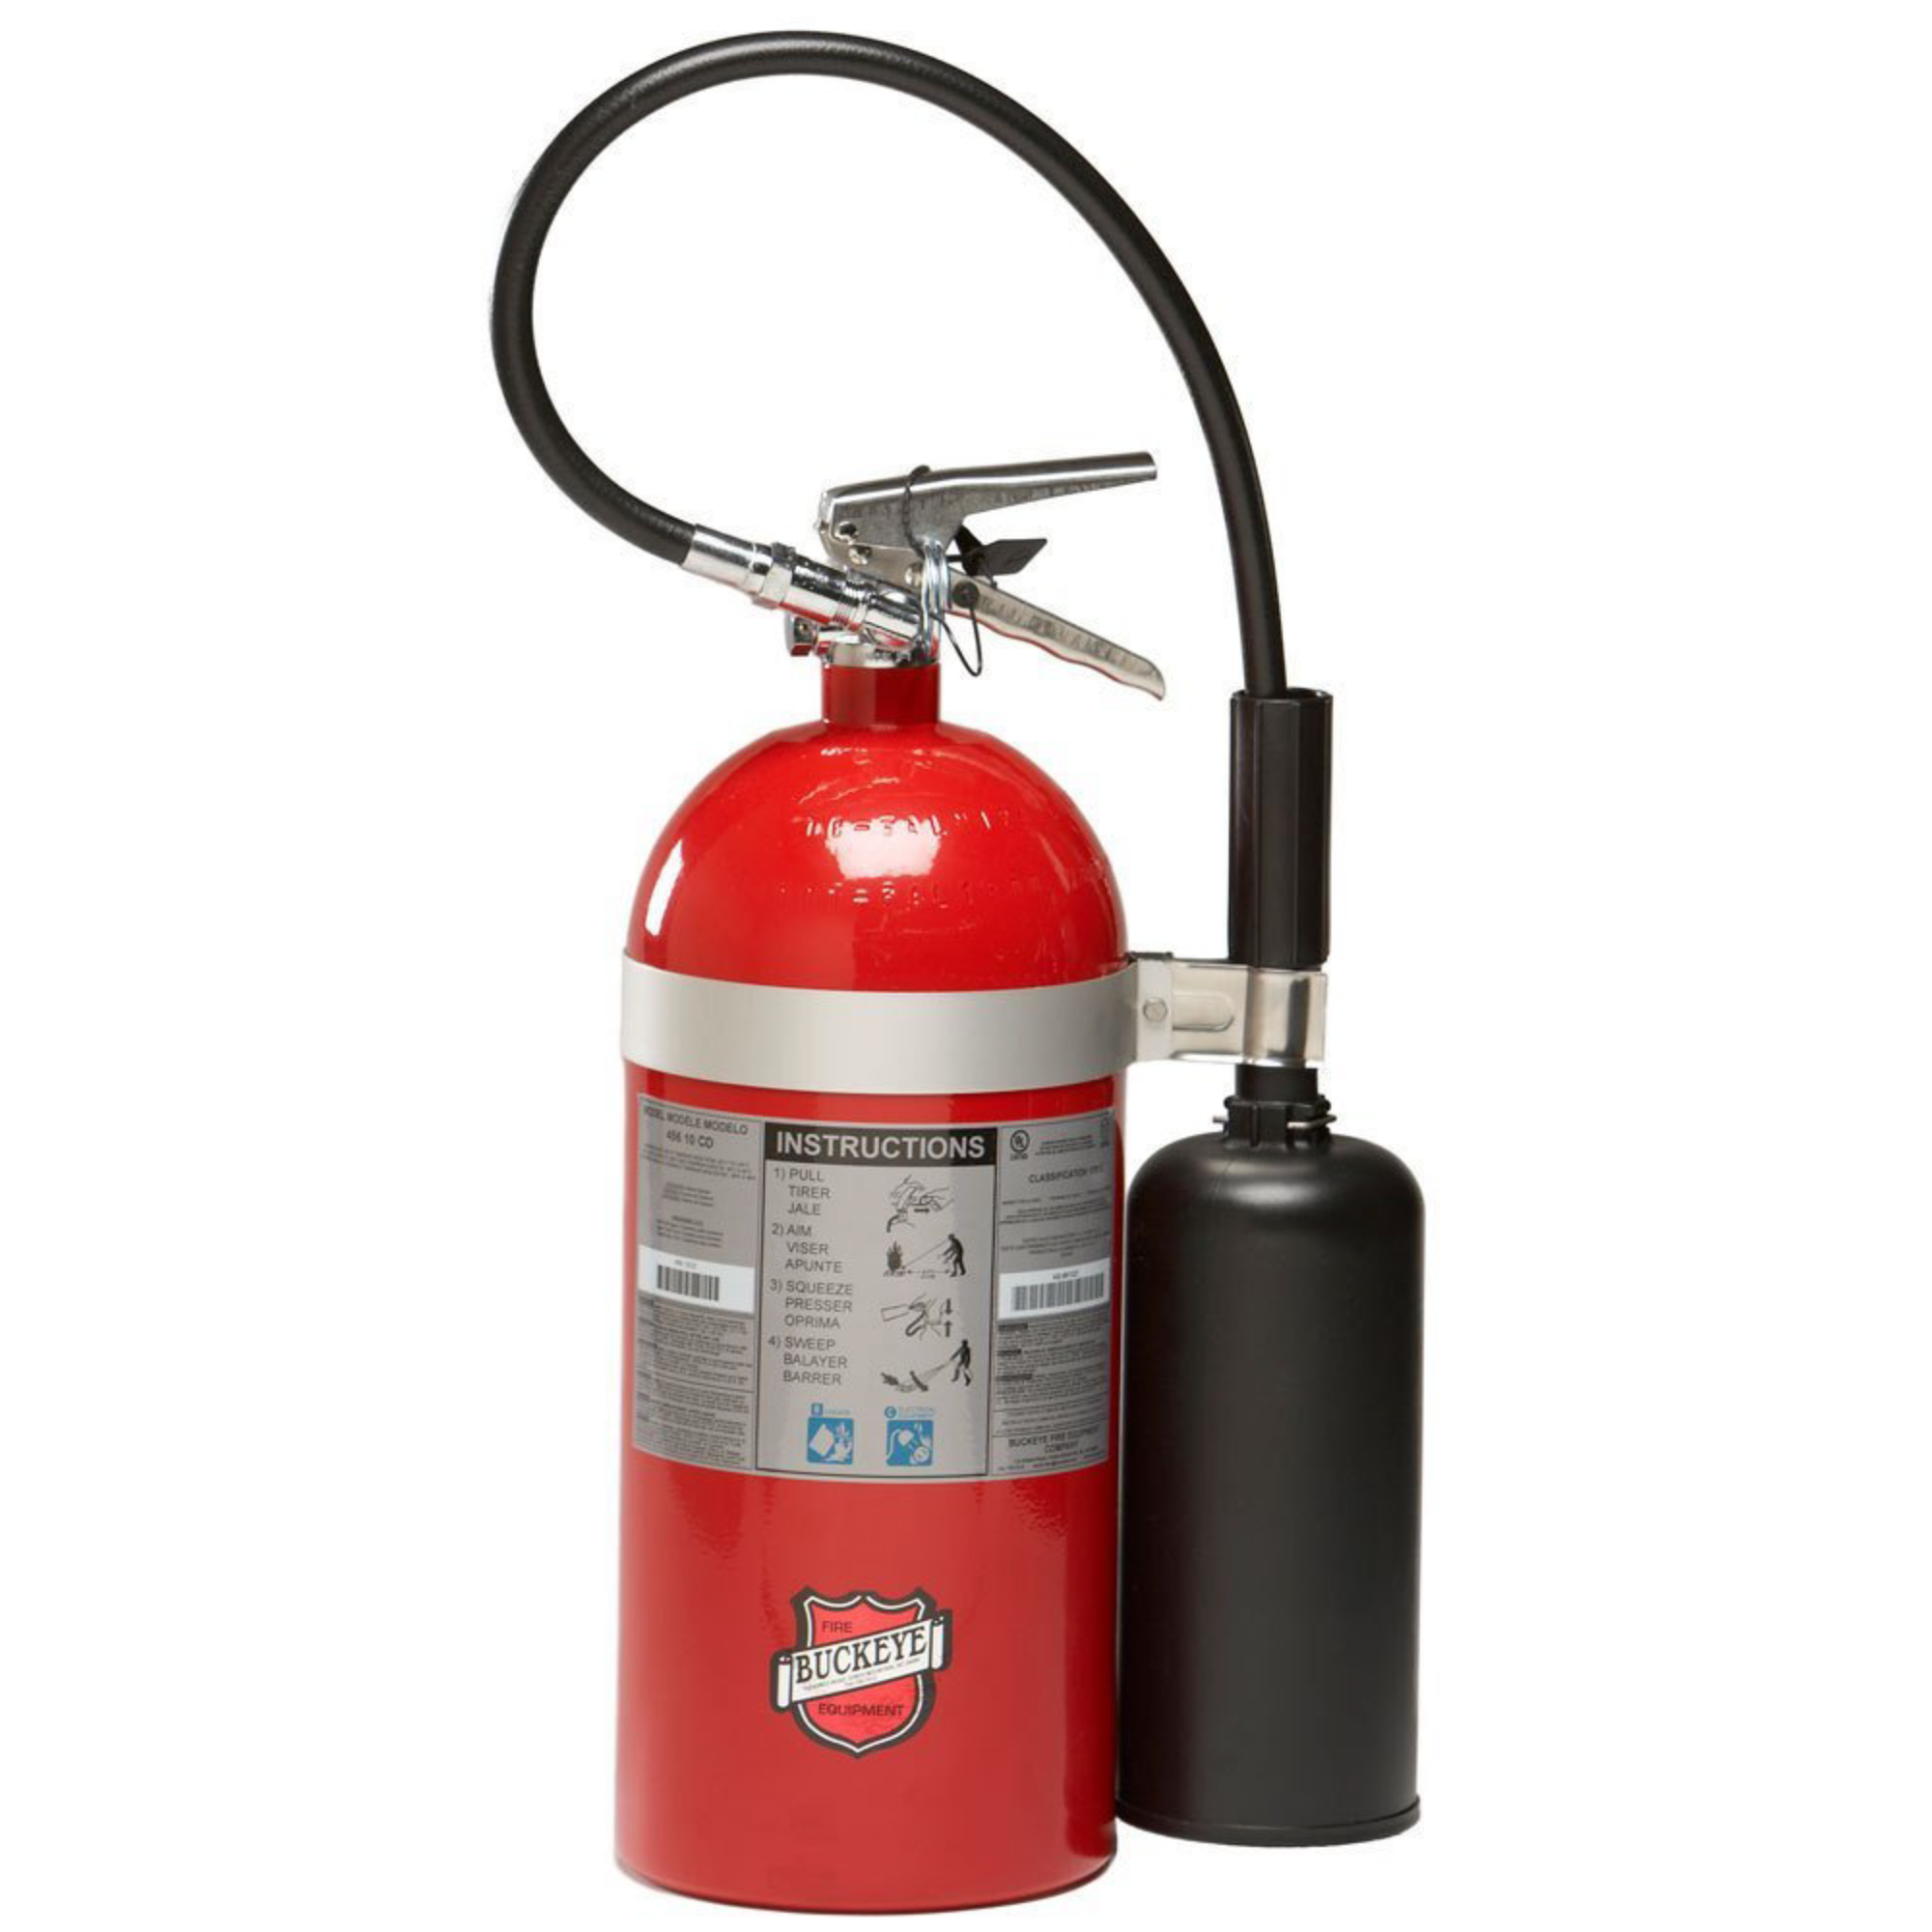 Buckeye, Fire Extinguisher, 10 lb BC Fire Extinguisher, CO2, Carbon Dioxide, Commercial Fire Extinguisher, Aluminum Valve, Wall Bracket, 45600, Monthly Record Tag, Great for Electronics